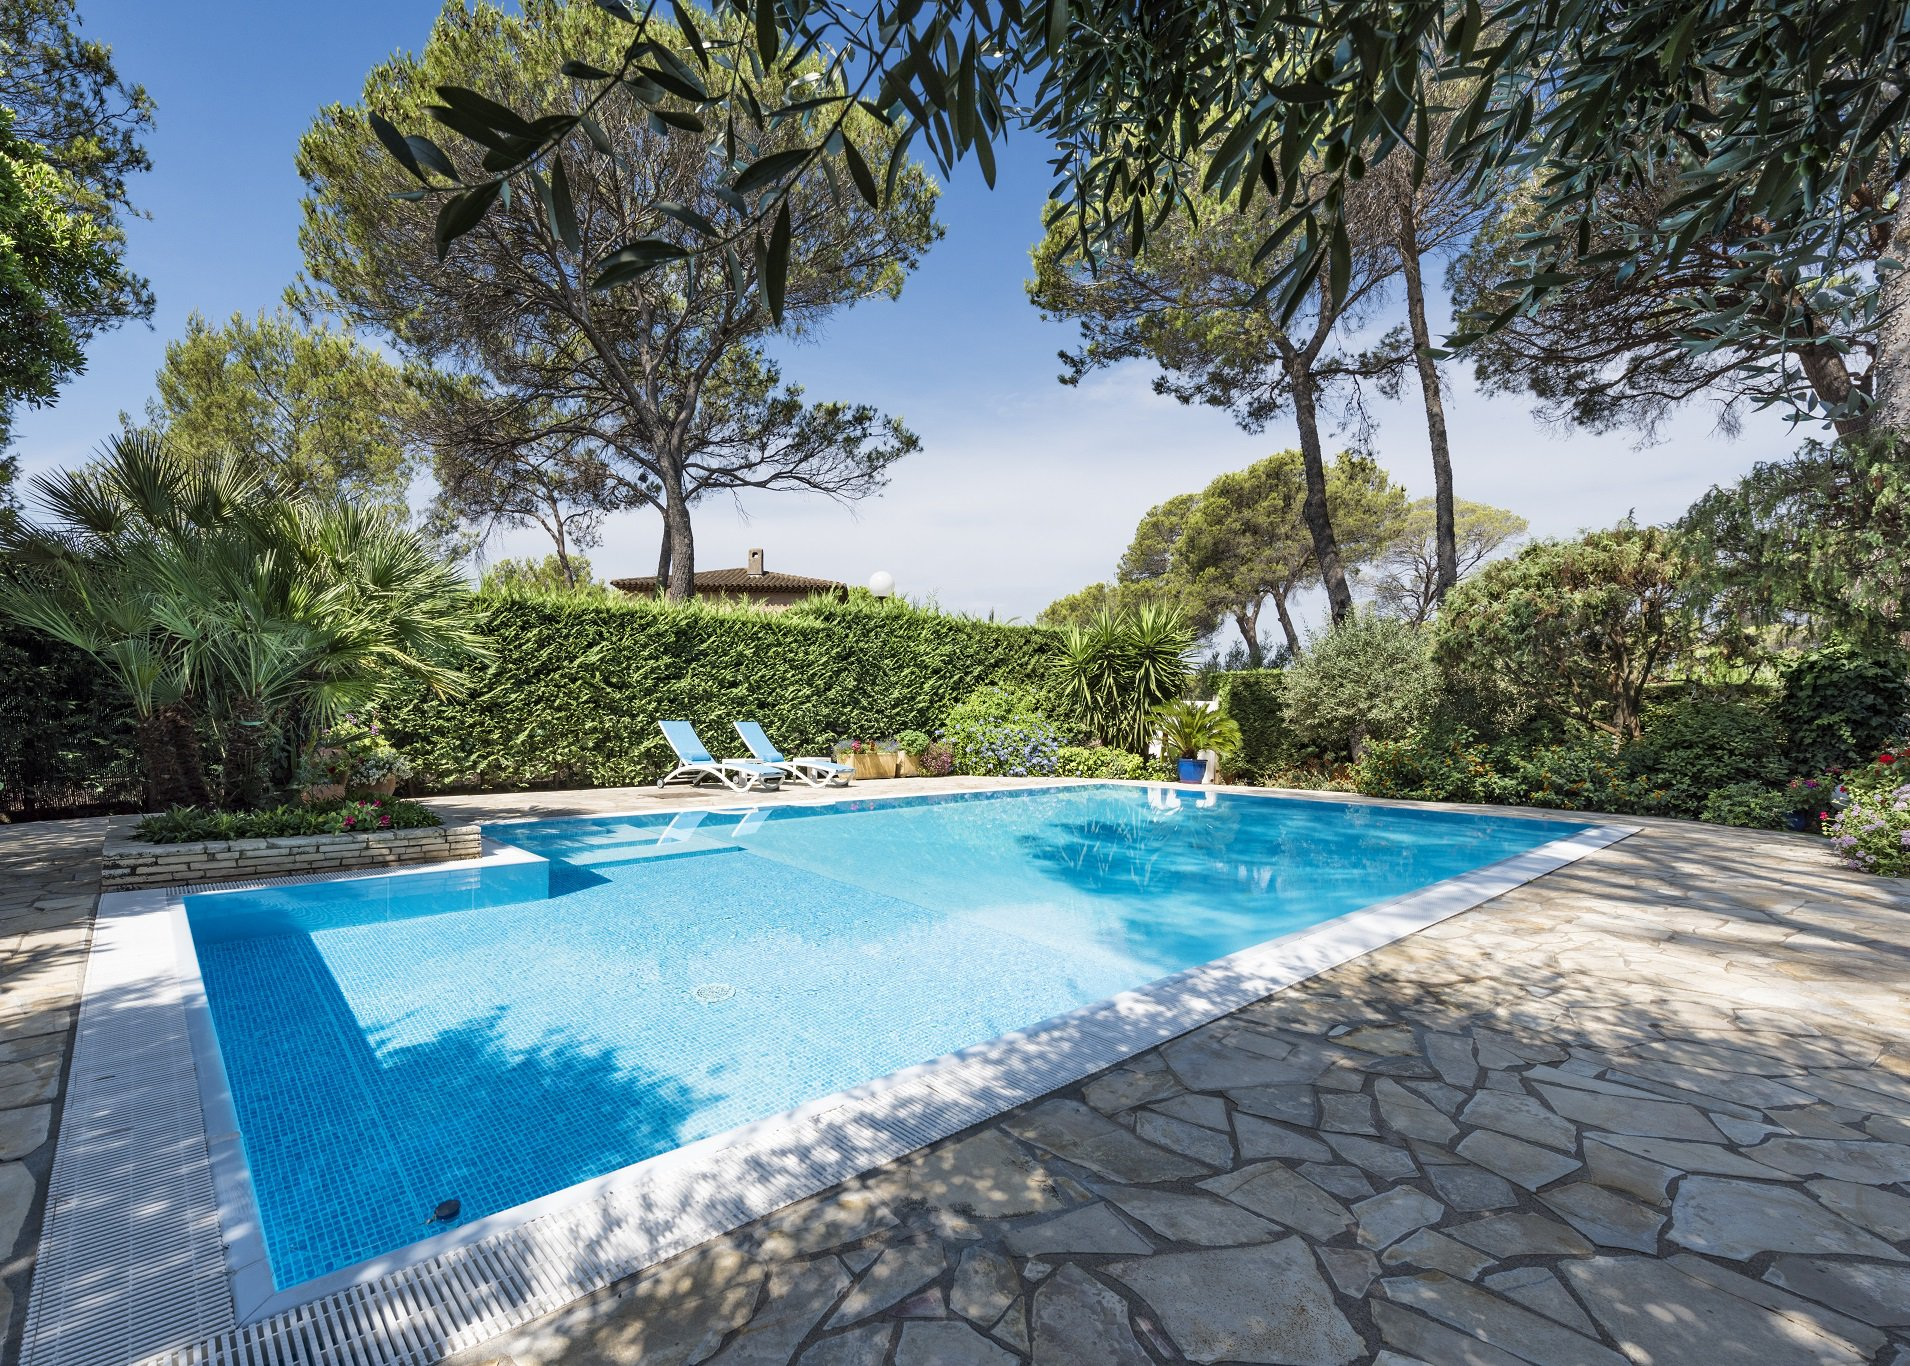 CONTEMPORARY VILLA 8 ROOMS AT FREJUS VALESCURE